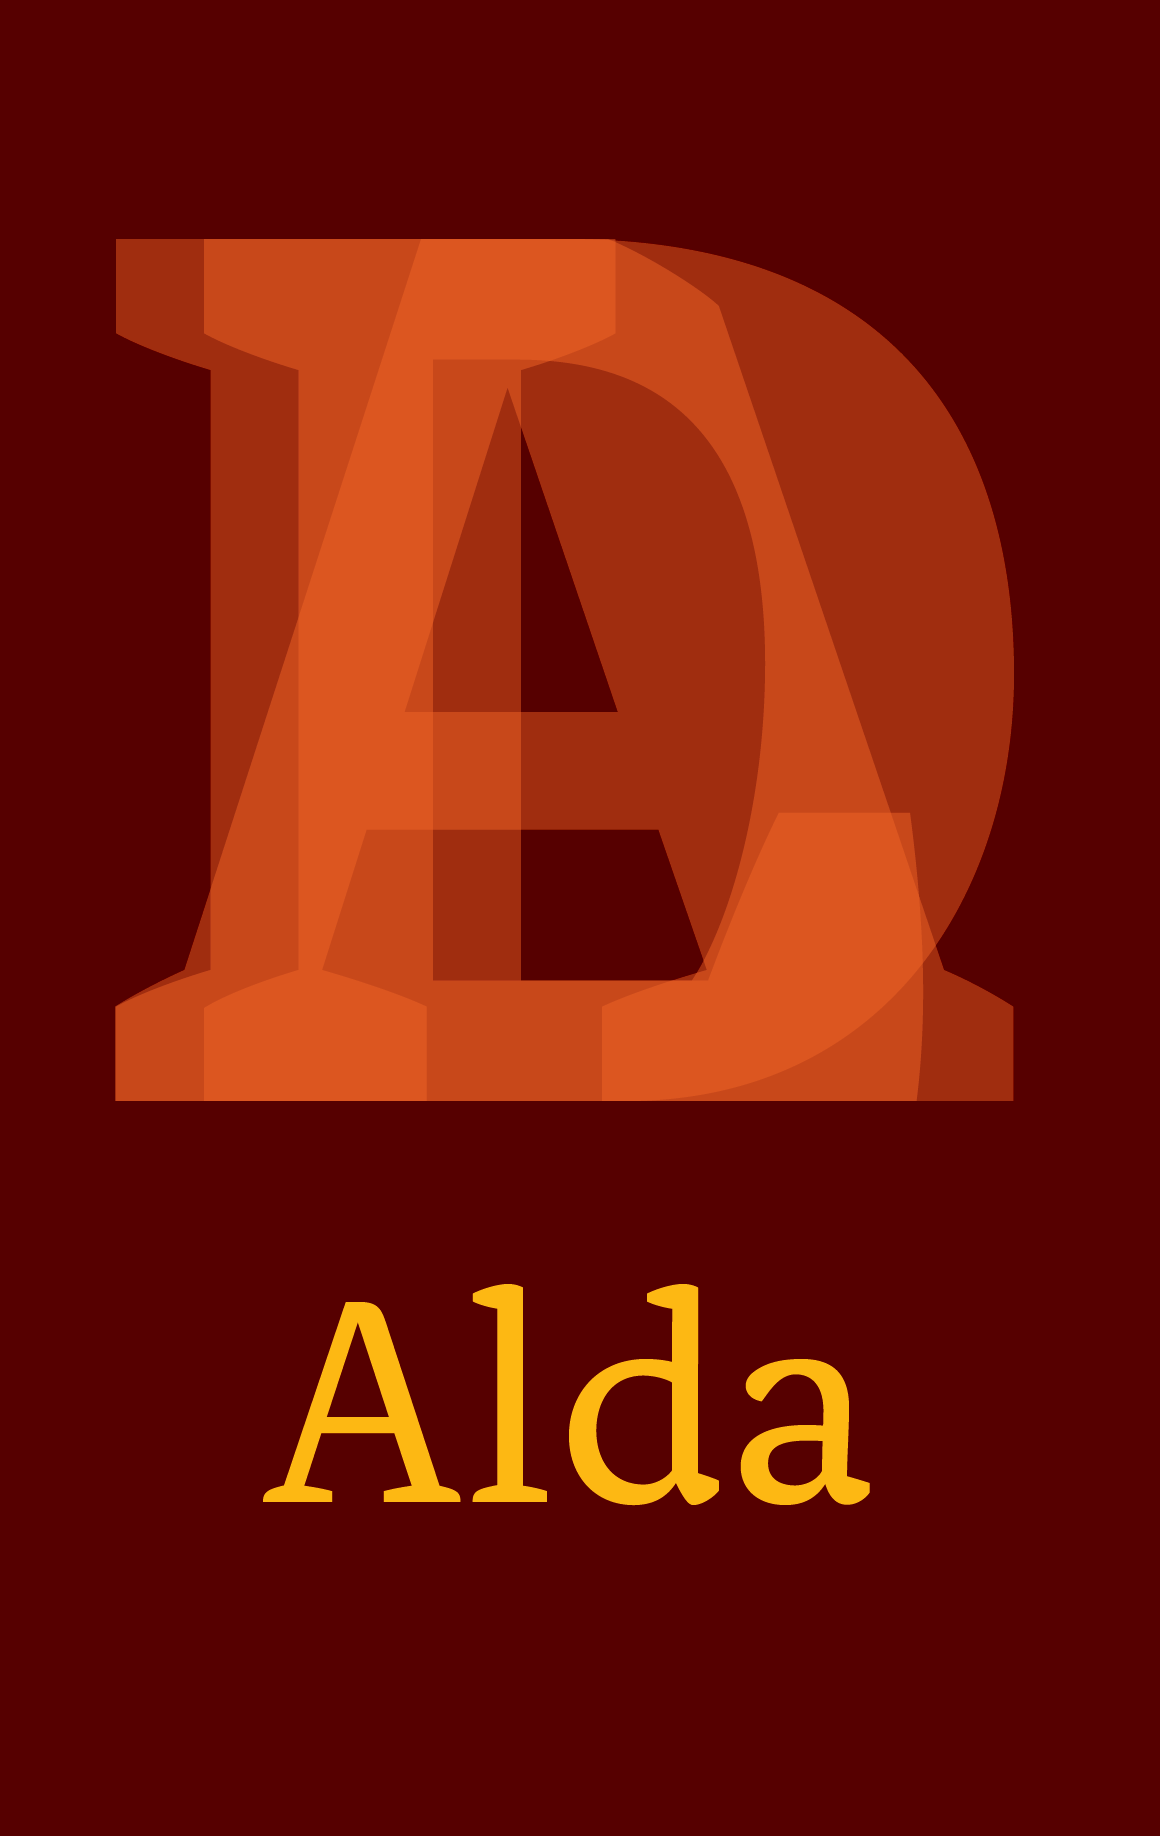 alda alda essay The little book of the icelanders: 50 miniature essays on the quirks and foibles of  the icelandic people ebook: alda sigmundsdottir: amazonca: kindle store.